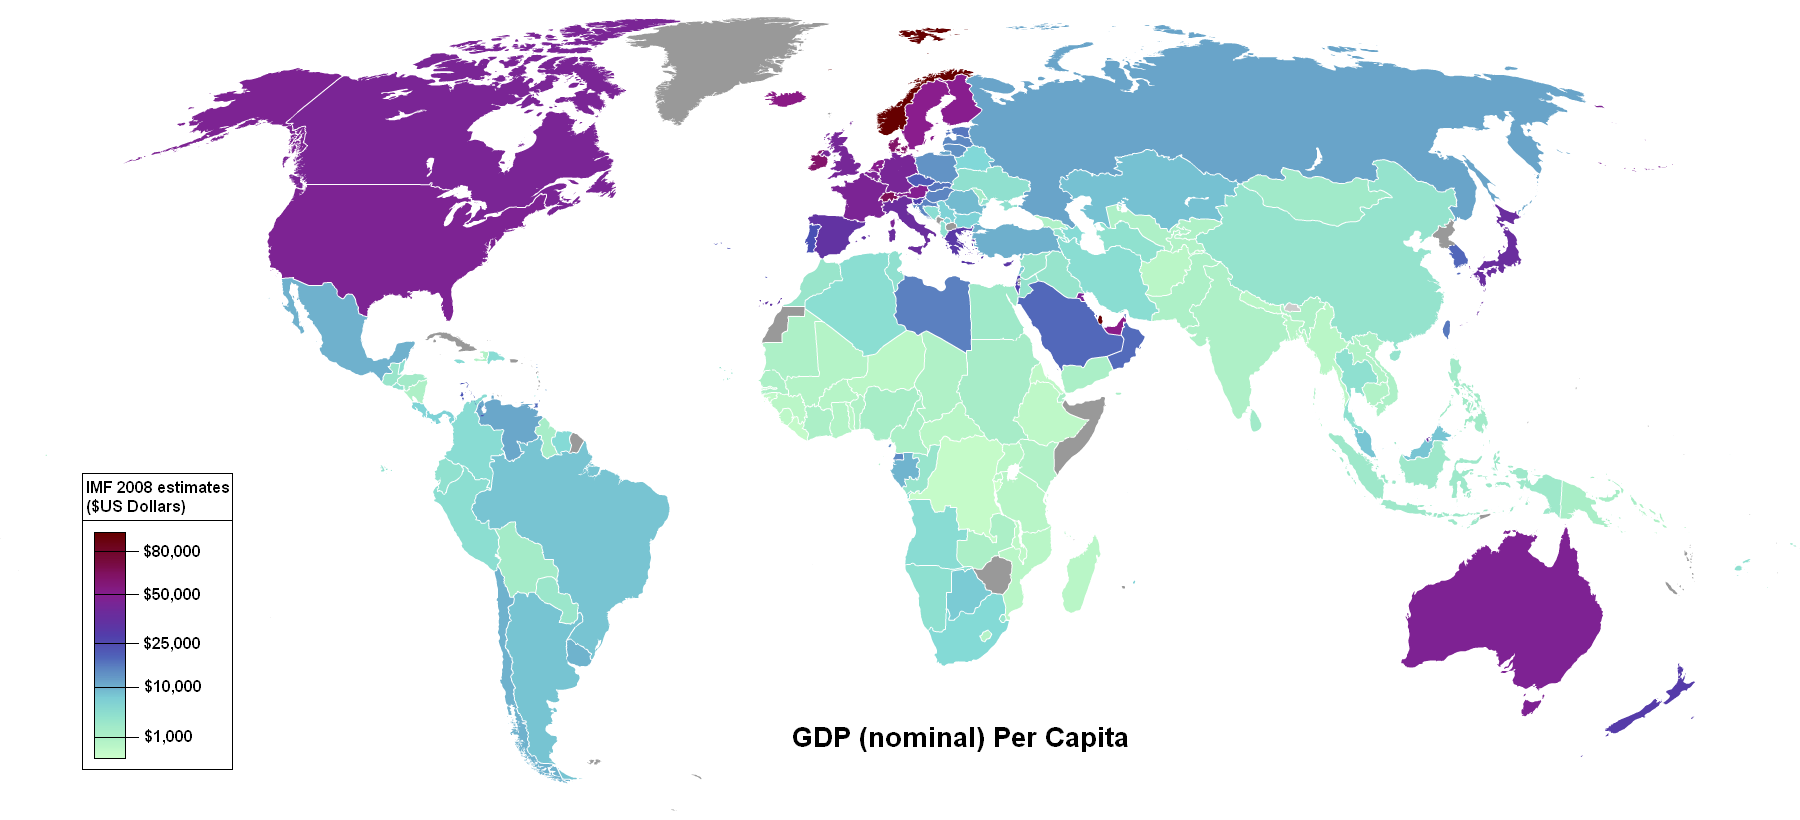 IMF 2008 estimates: GDP (nominal) per capita